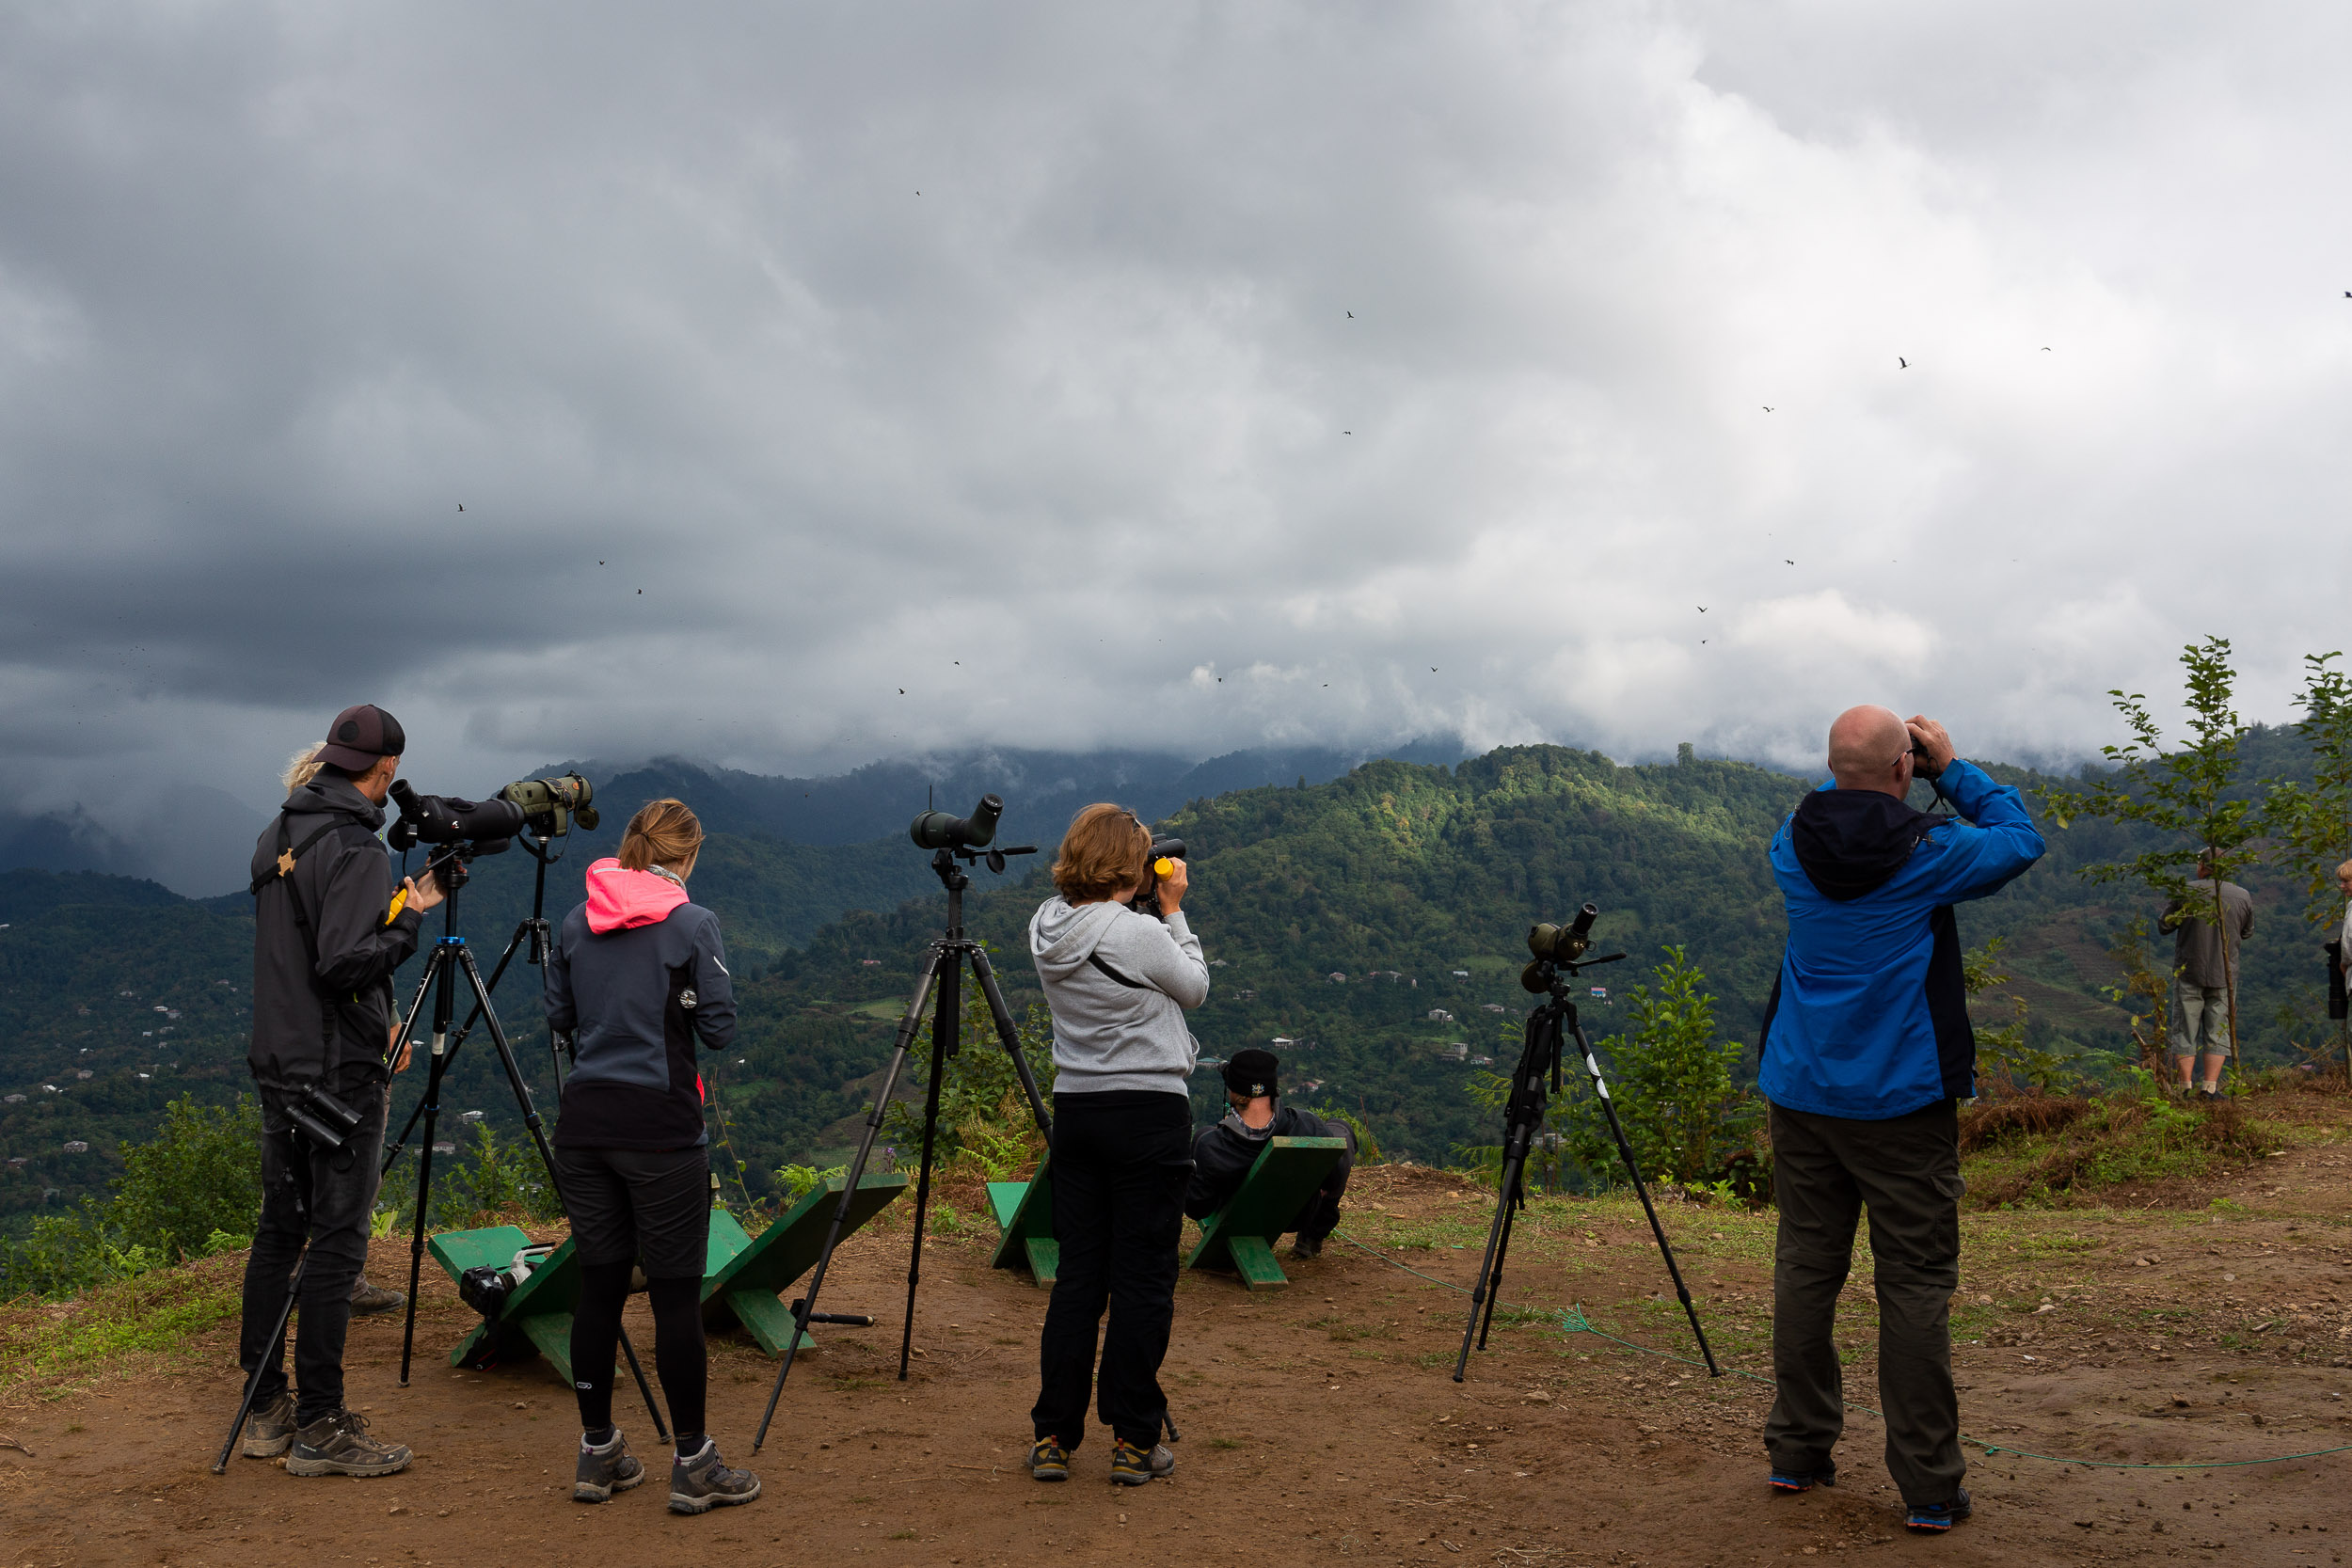 Counters of the Batumi Raptor Count. Photo by Bart Hoekstra.